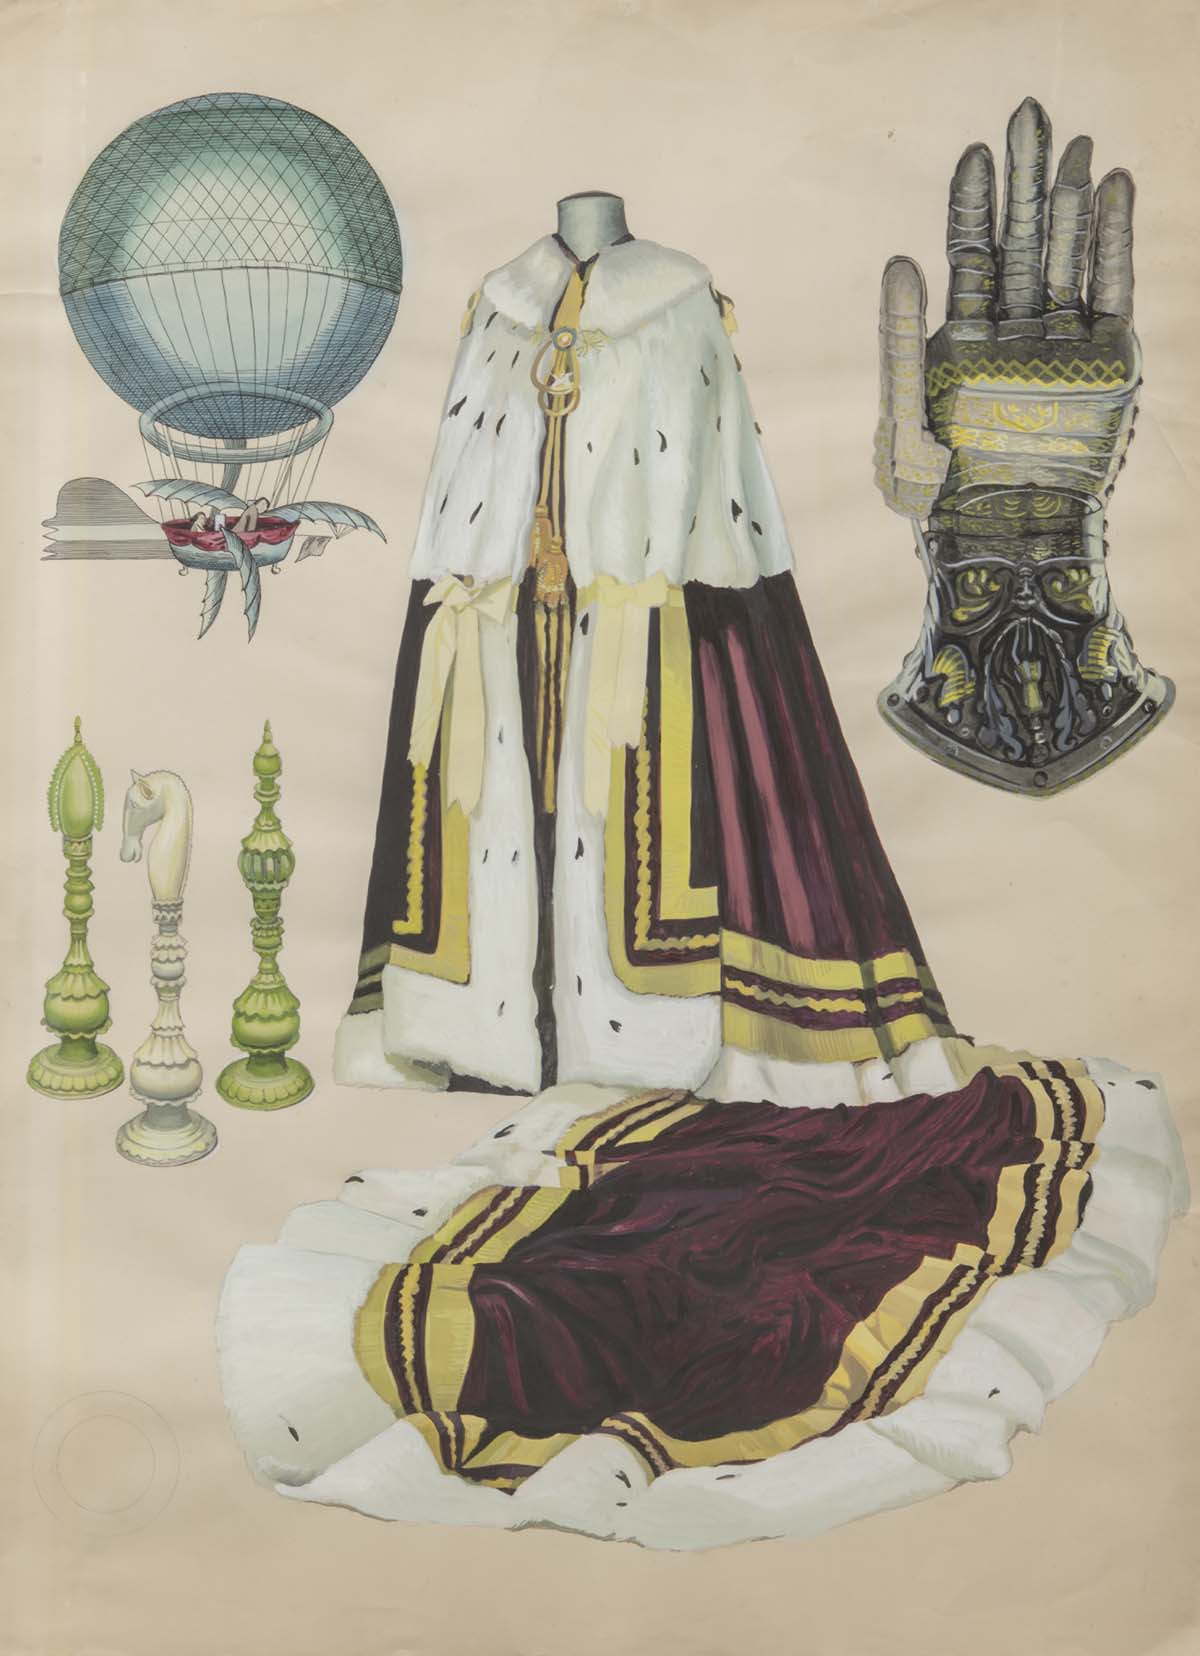 watercolour illustrations of an ermine gown, knights gauntlet, hot air balloon and chess pieces